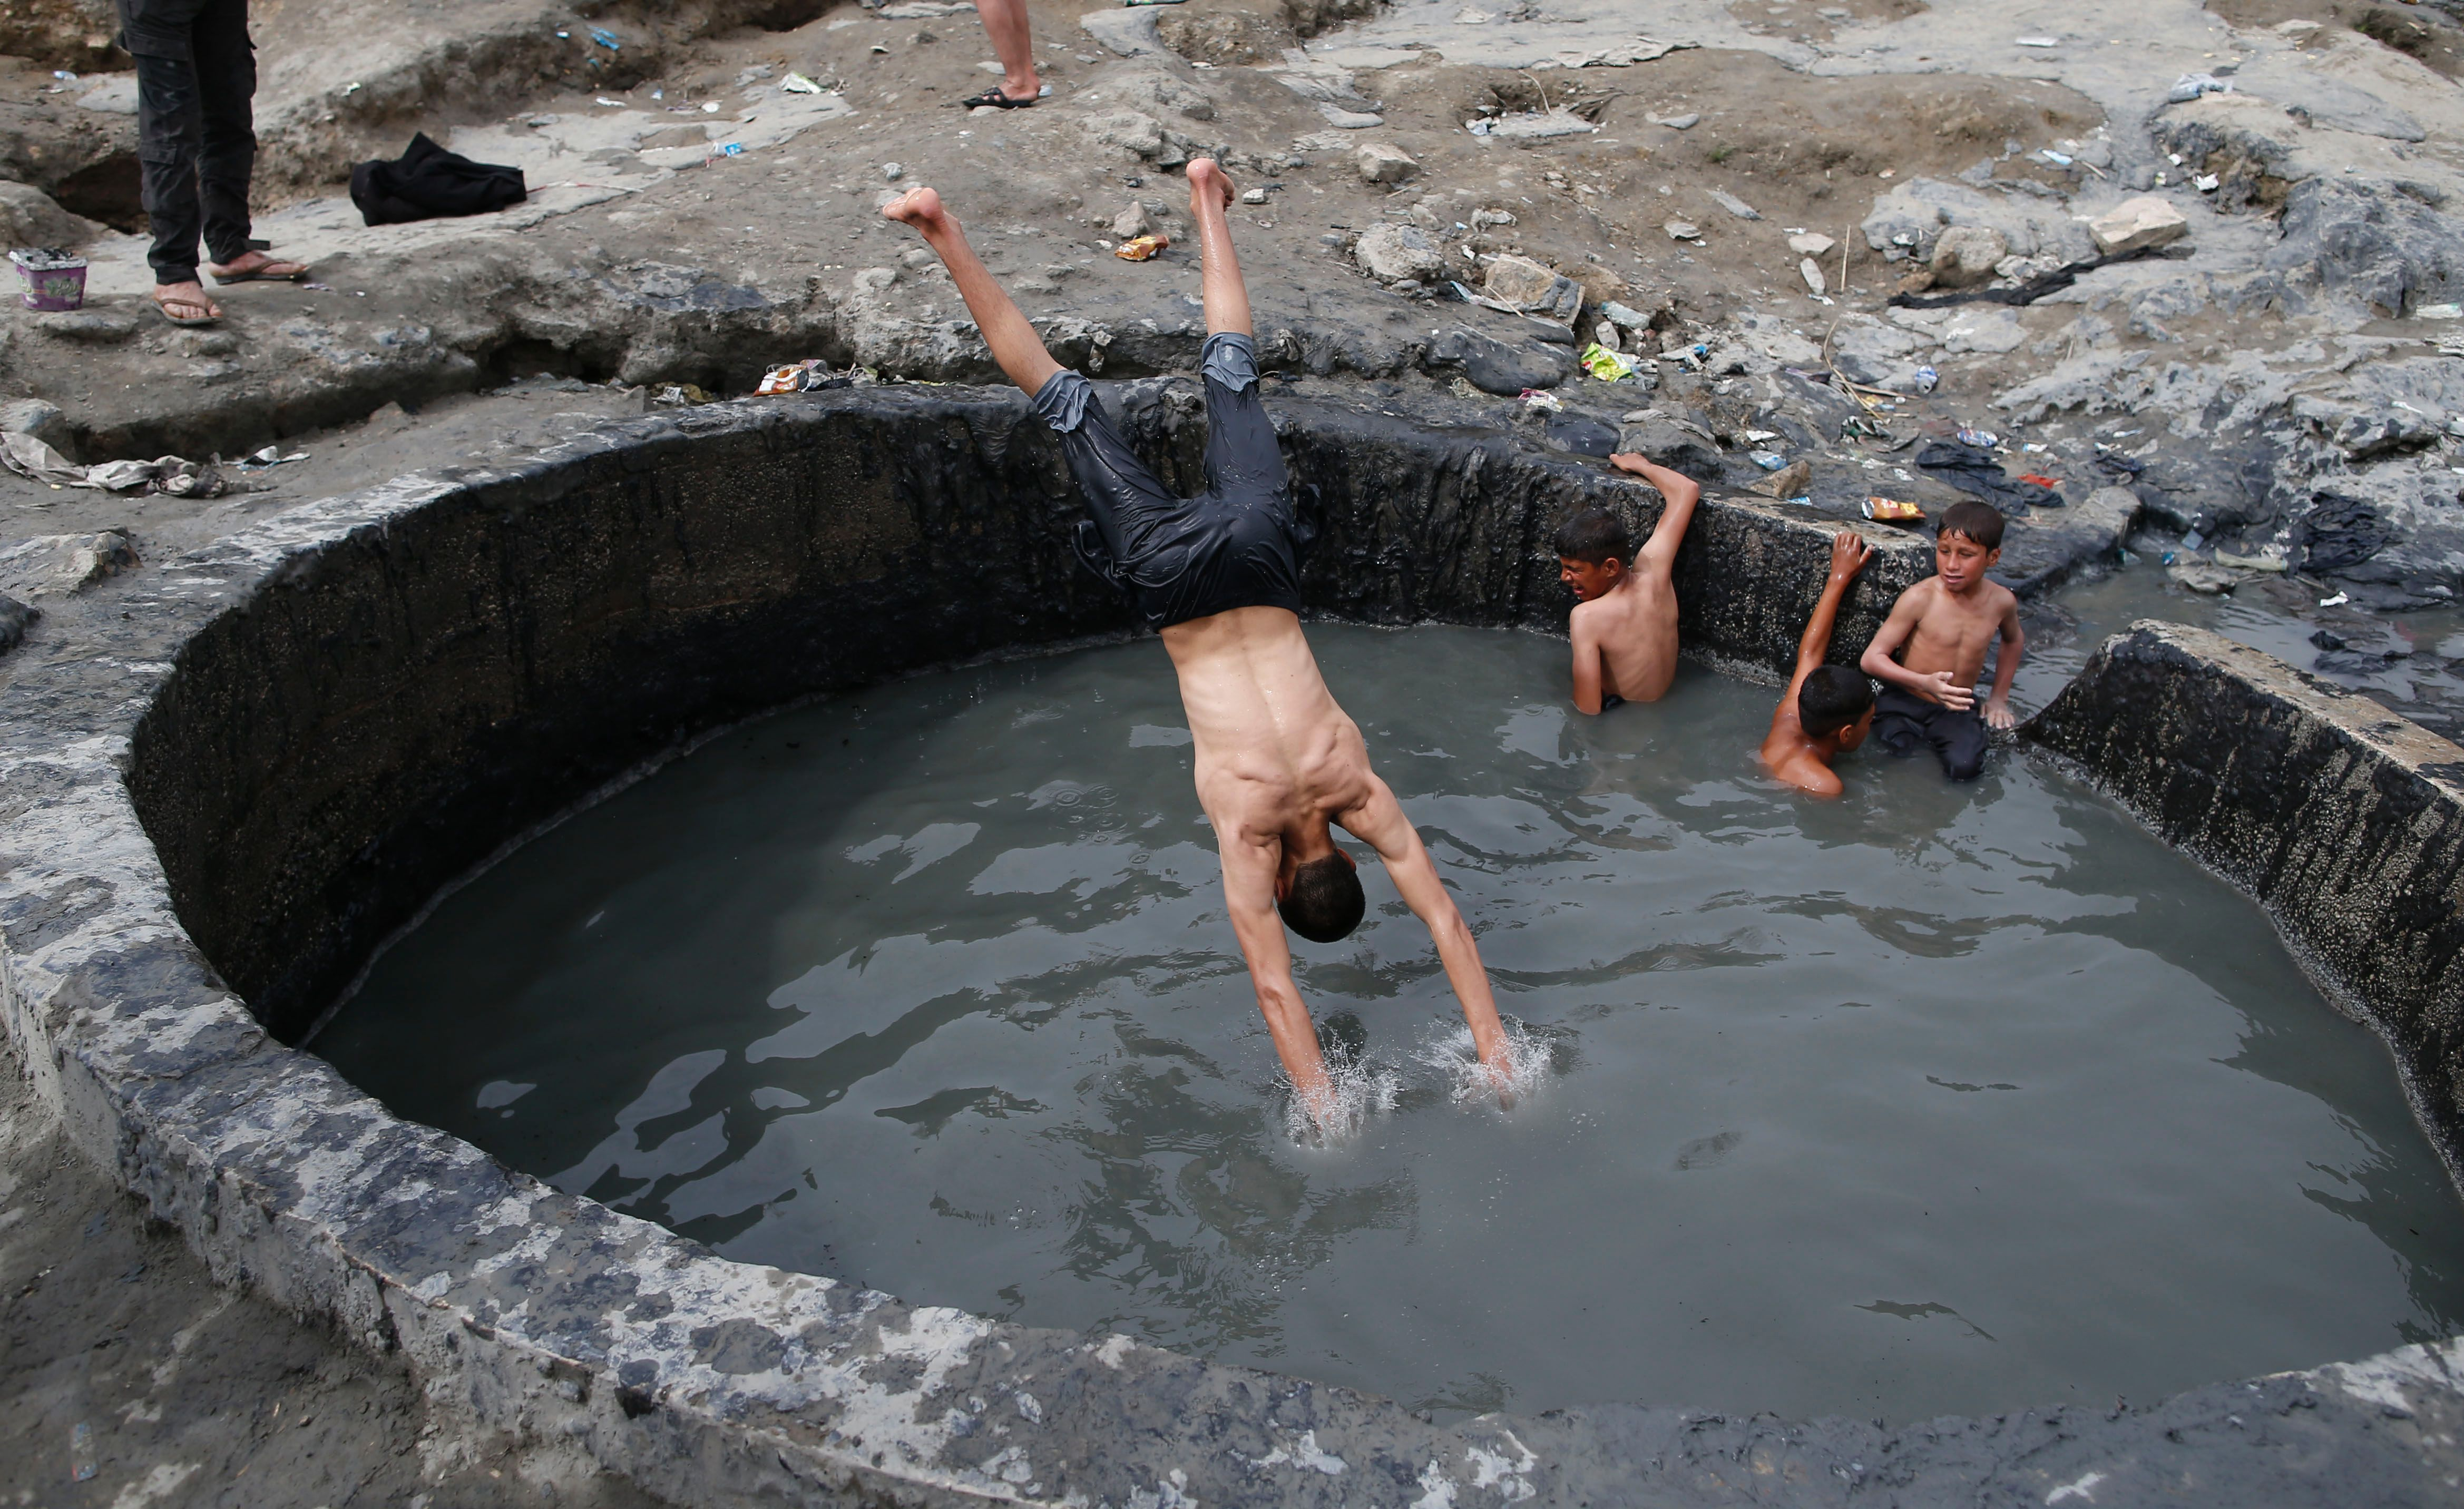 TOPSHOT - Iraqis bathe in a sulphur pond in the Hamam al-Alil area, about 14 kilometres from the southern outskirts of Mosul, on April 1, 2017. More than 200,000 people have fled west Mosul since the operation to oust the Islamic State group began last month, and officials and witnesses say that air strikes have taken a devastating toll on civilians who remained in the city. / AFP PHOTO / AHMAD GHARABLI / TT / kod 444